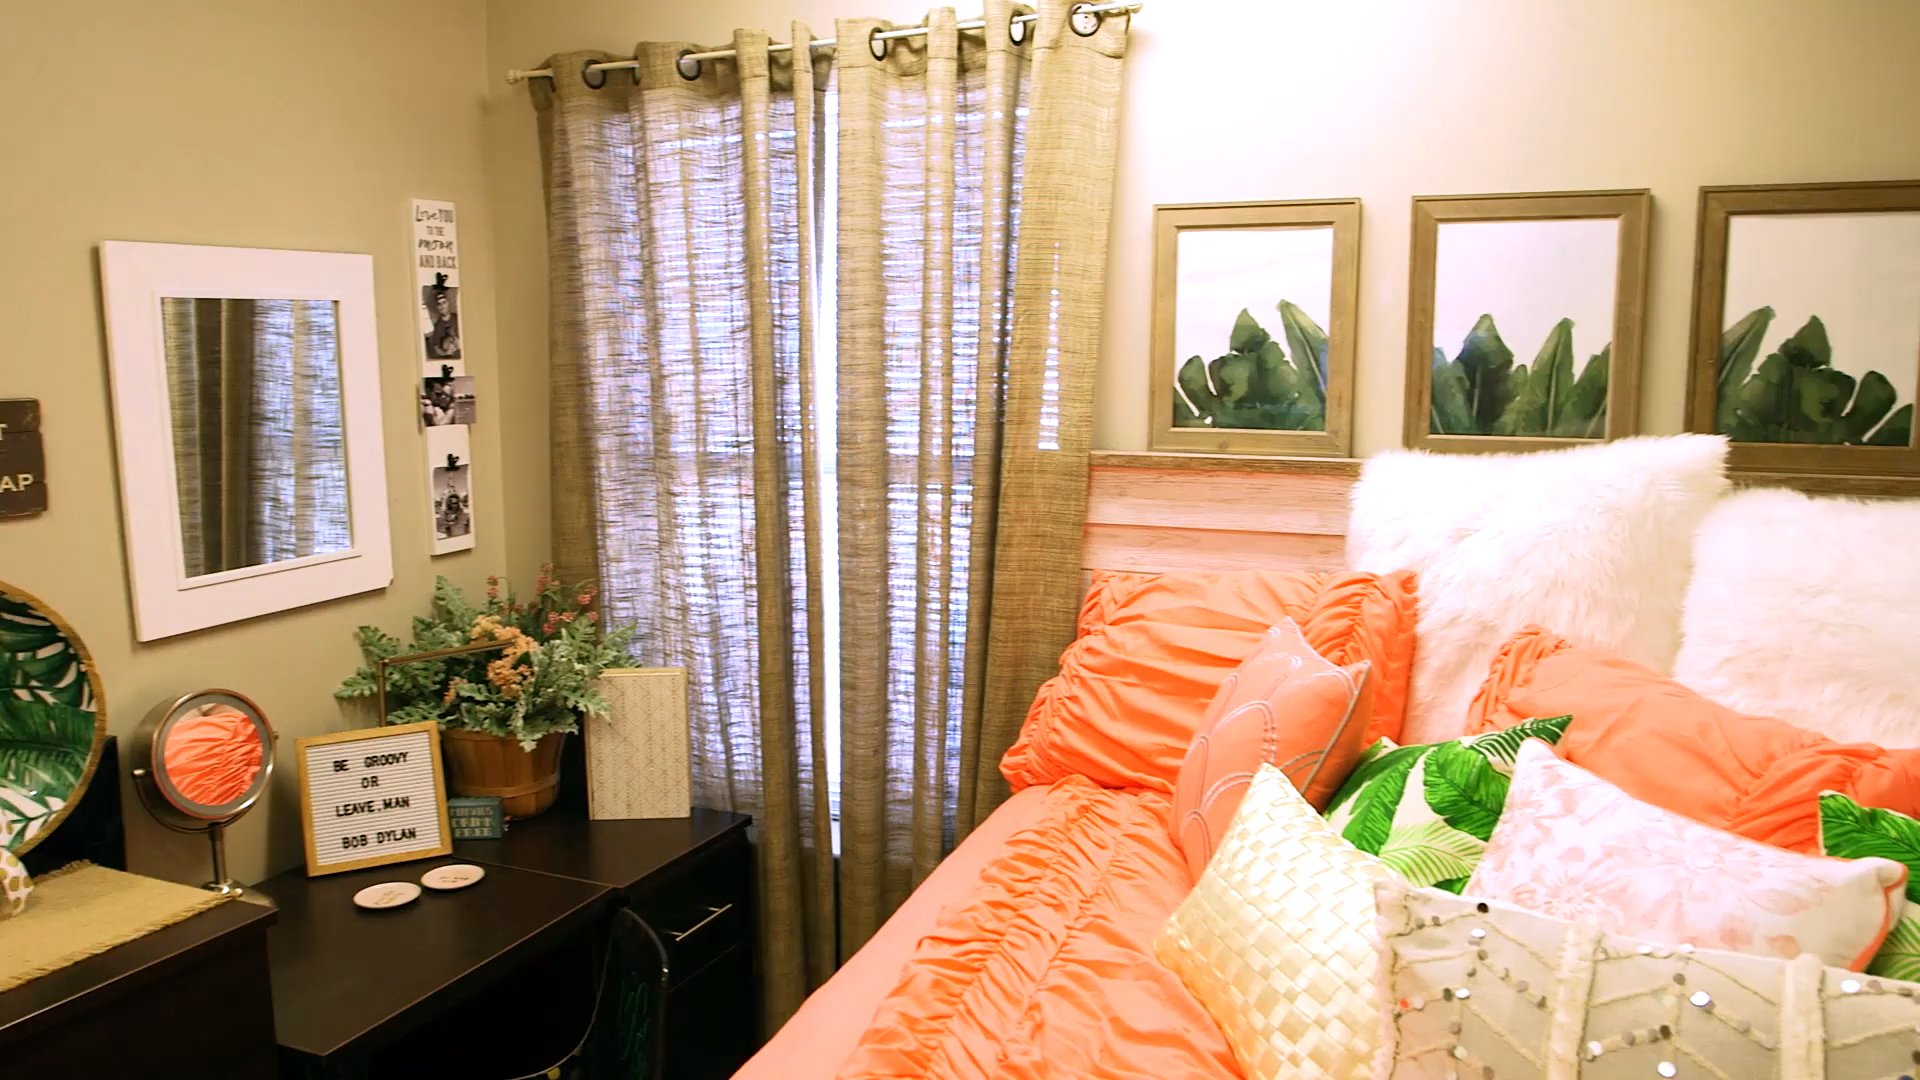 Samford Dorm Room Tour